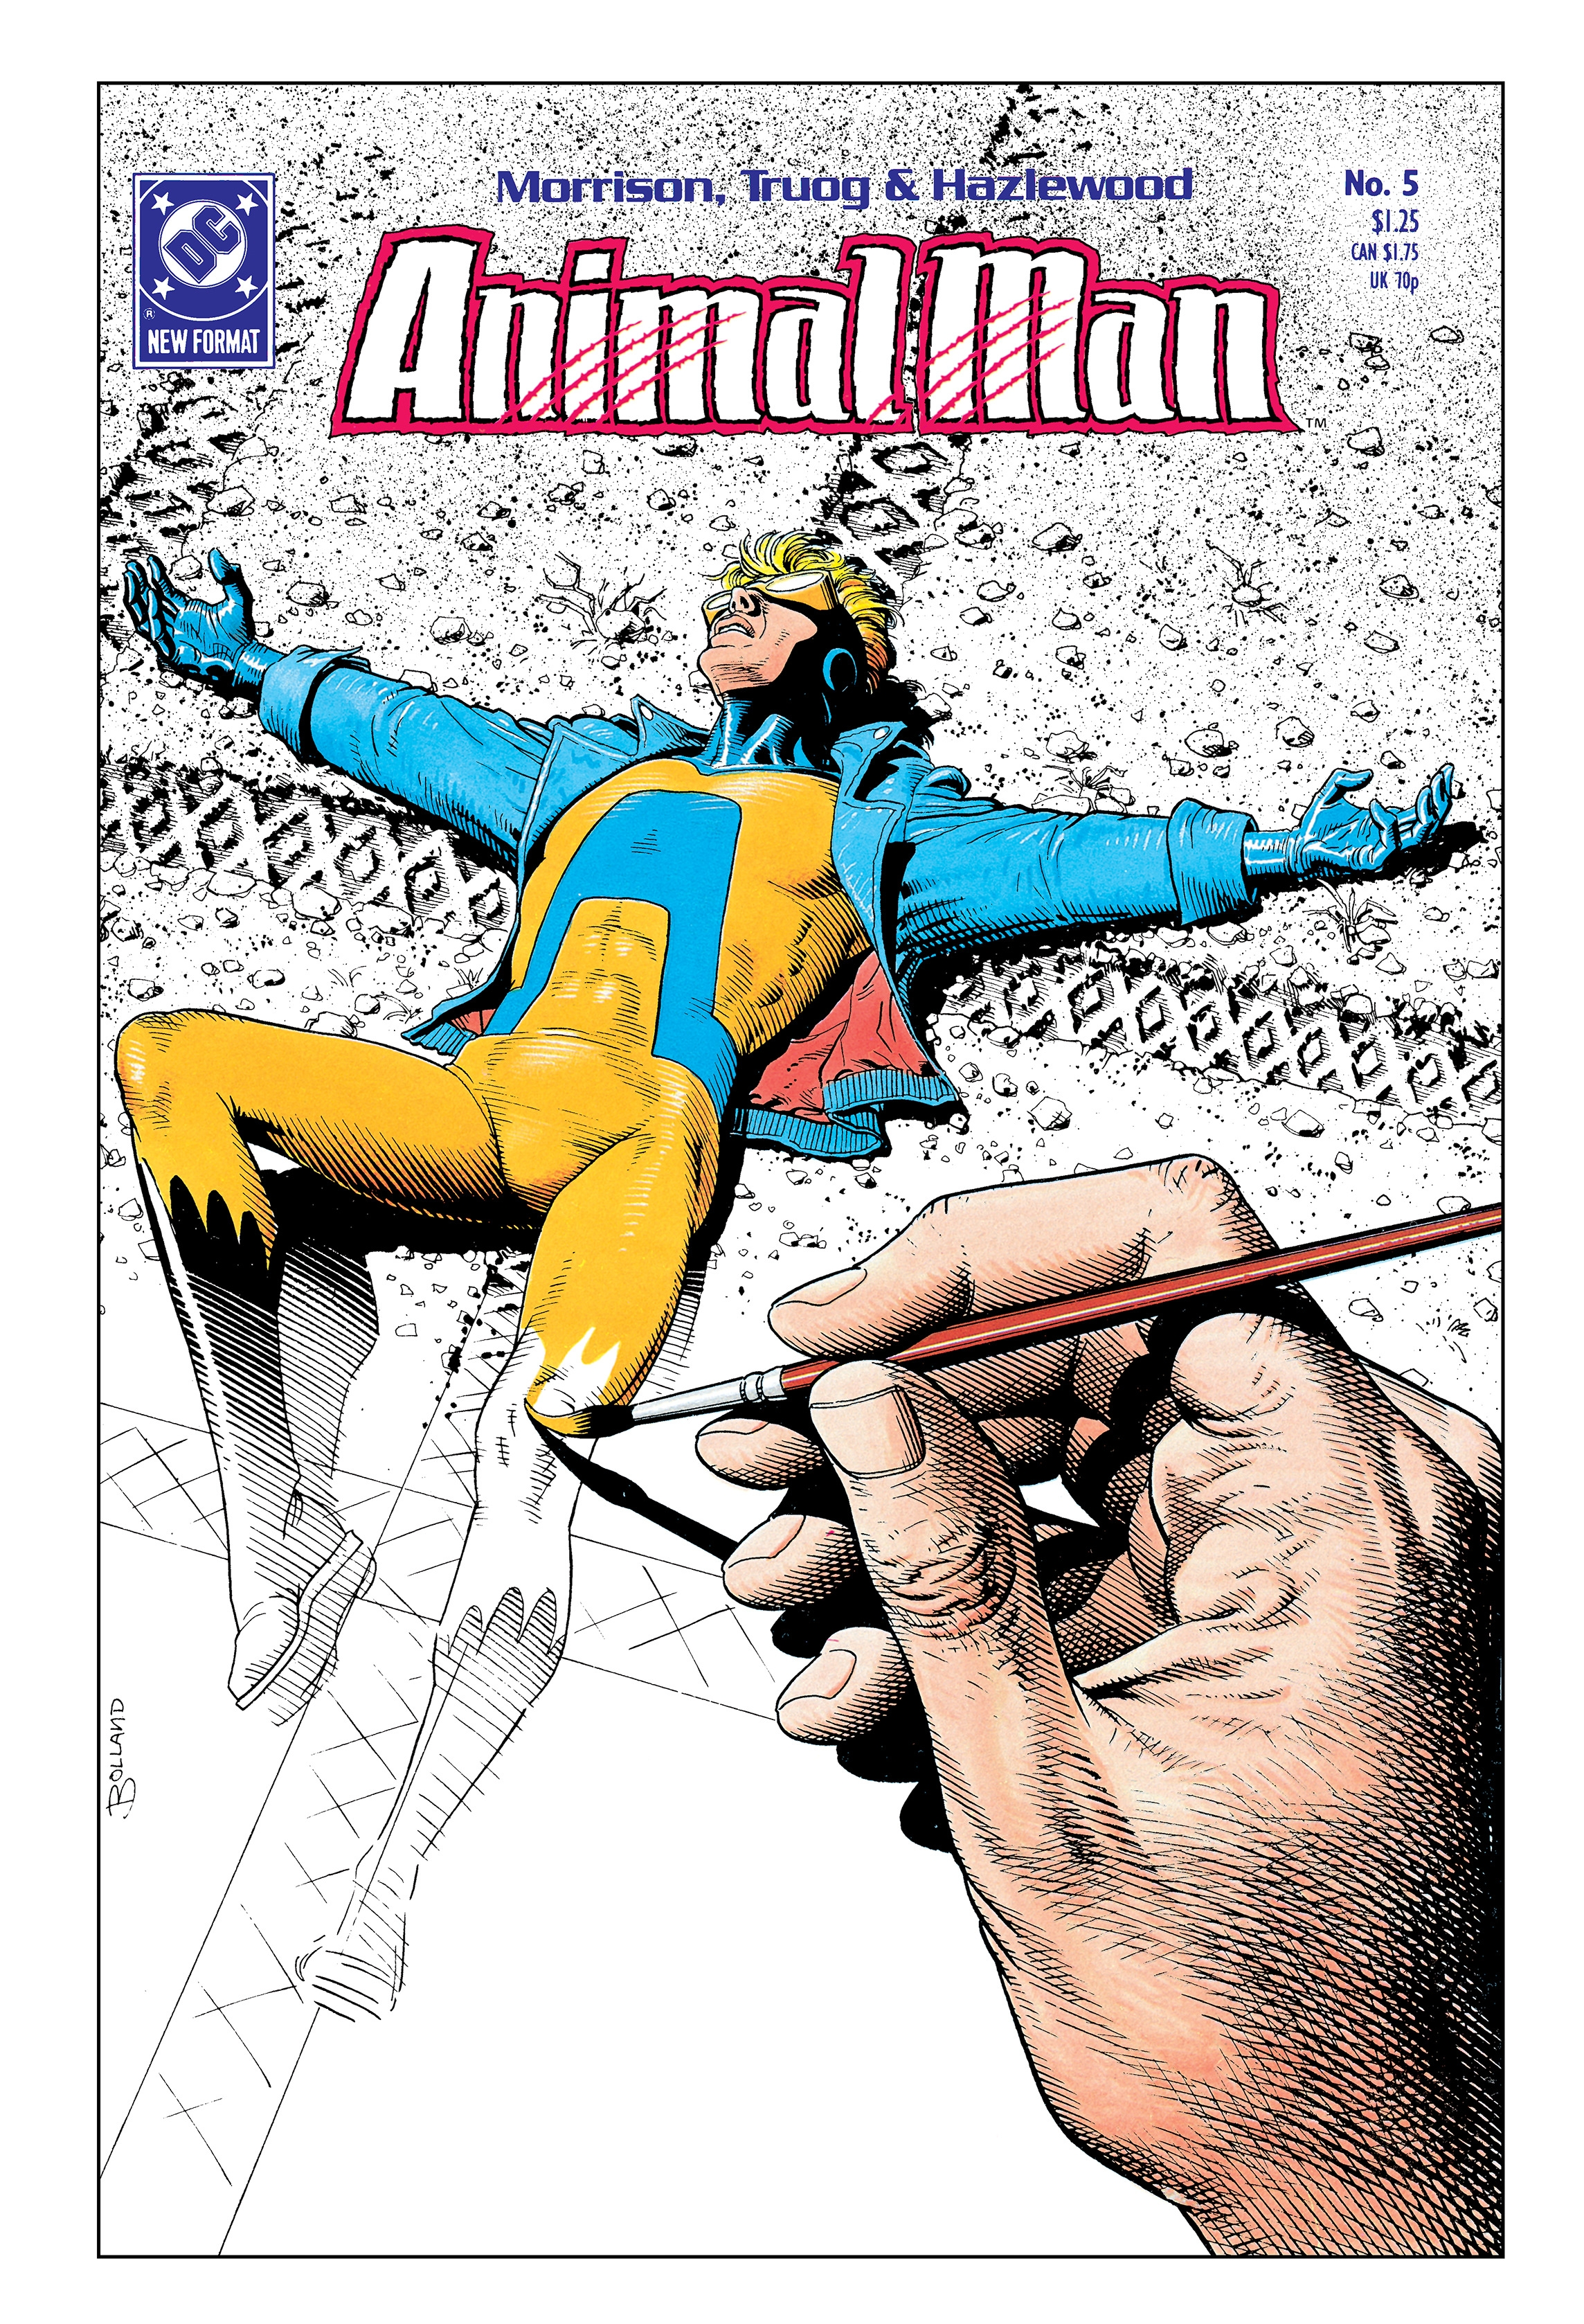 Animal Man by Grant Morrison Book One 30th Anniversary Deluxe Edition by Grant Morrison, ISBN: 9781401285470